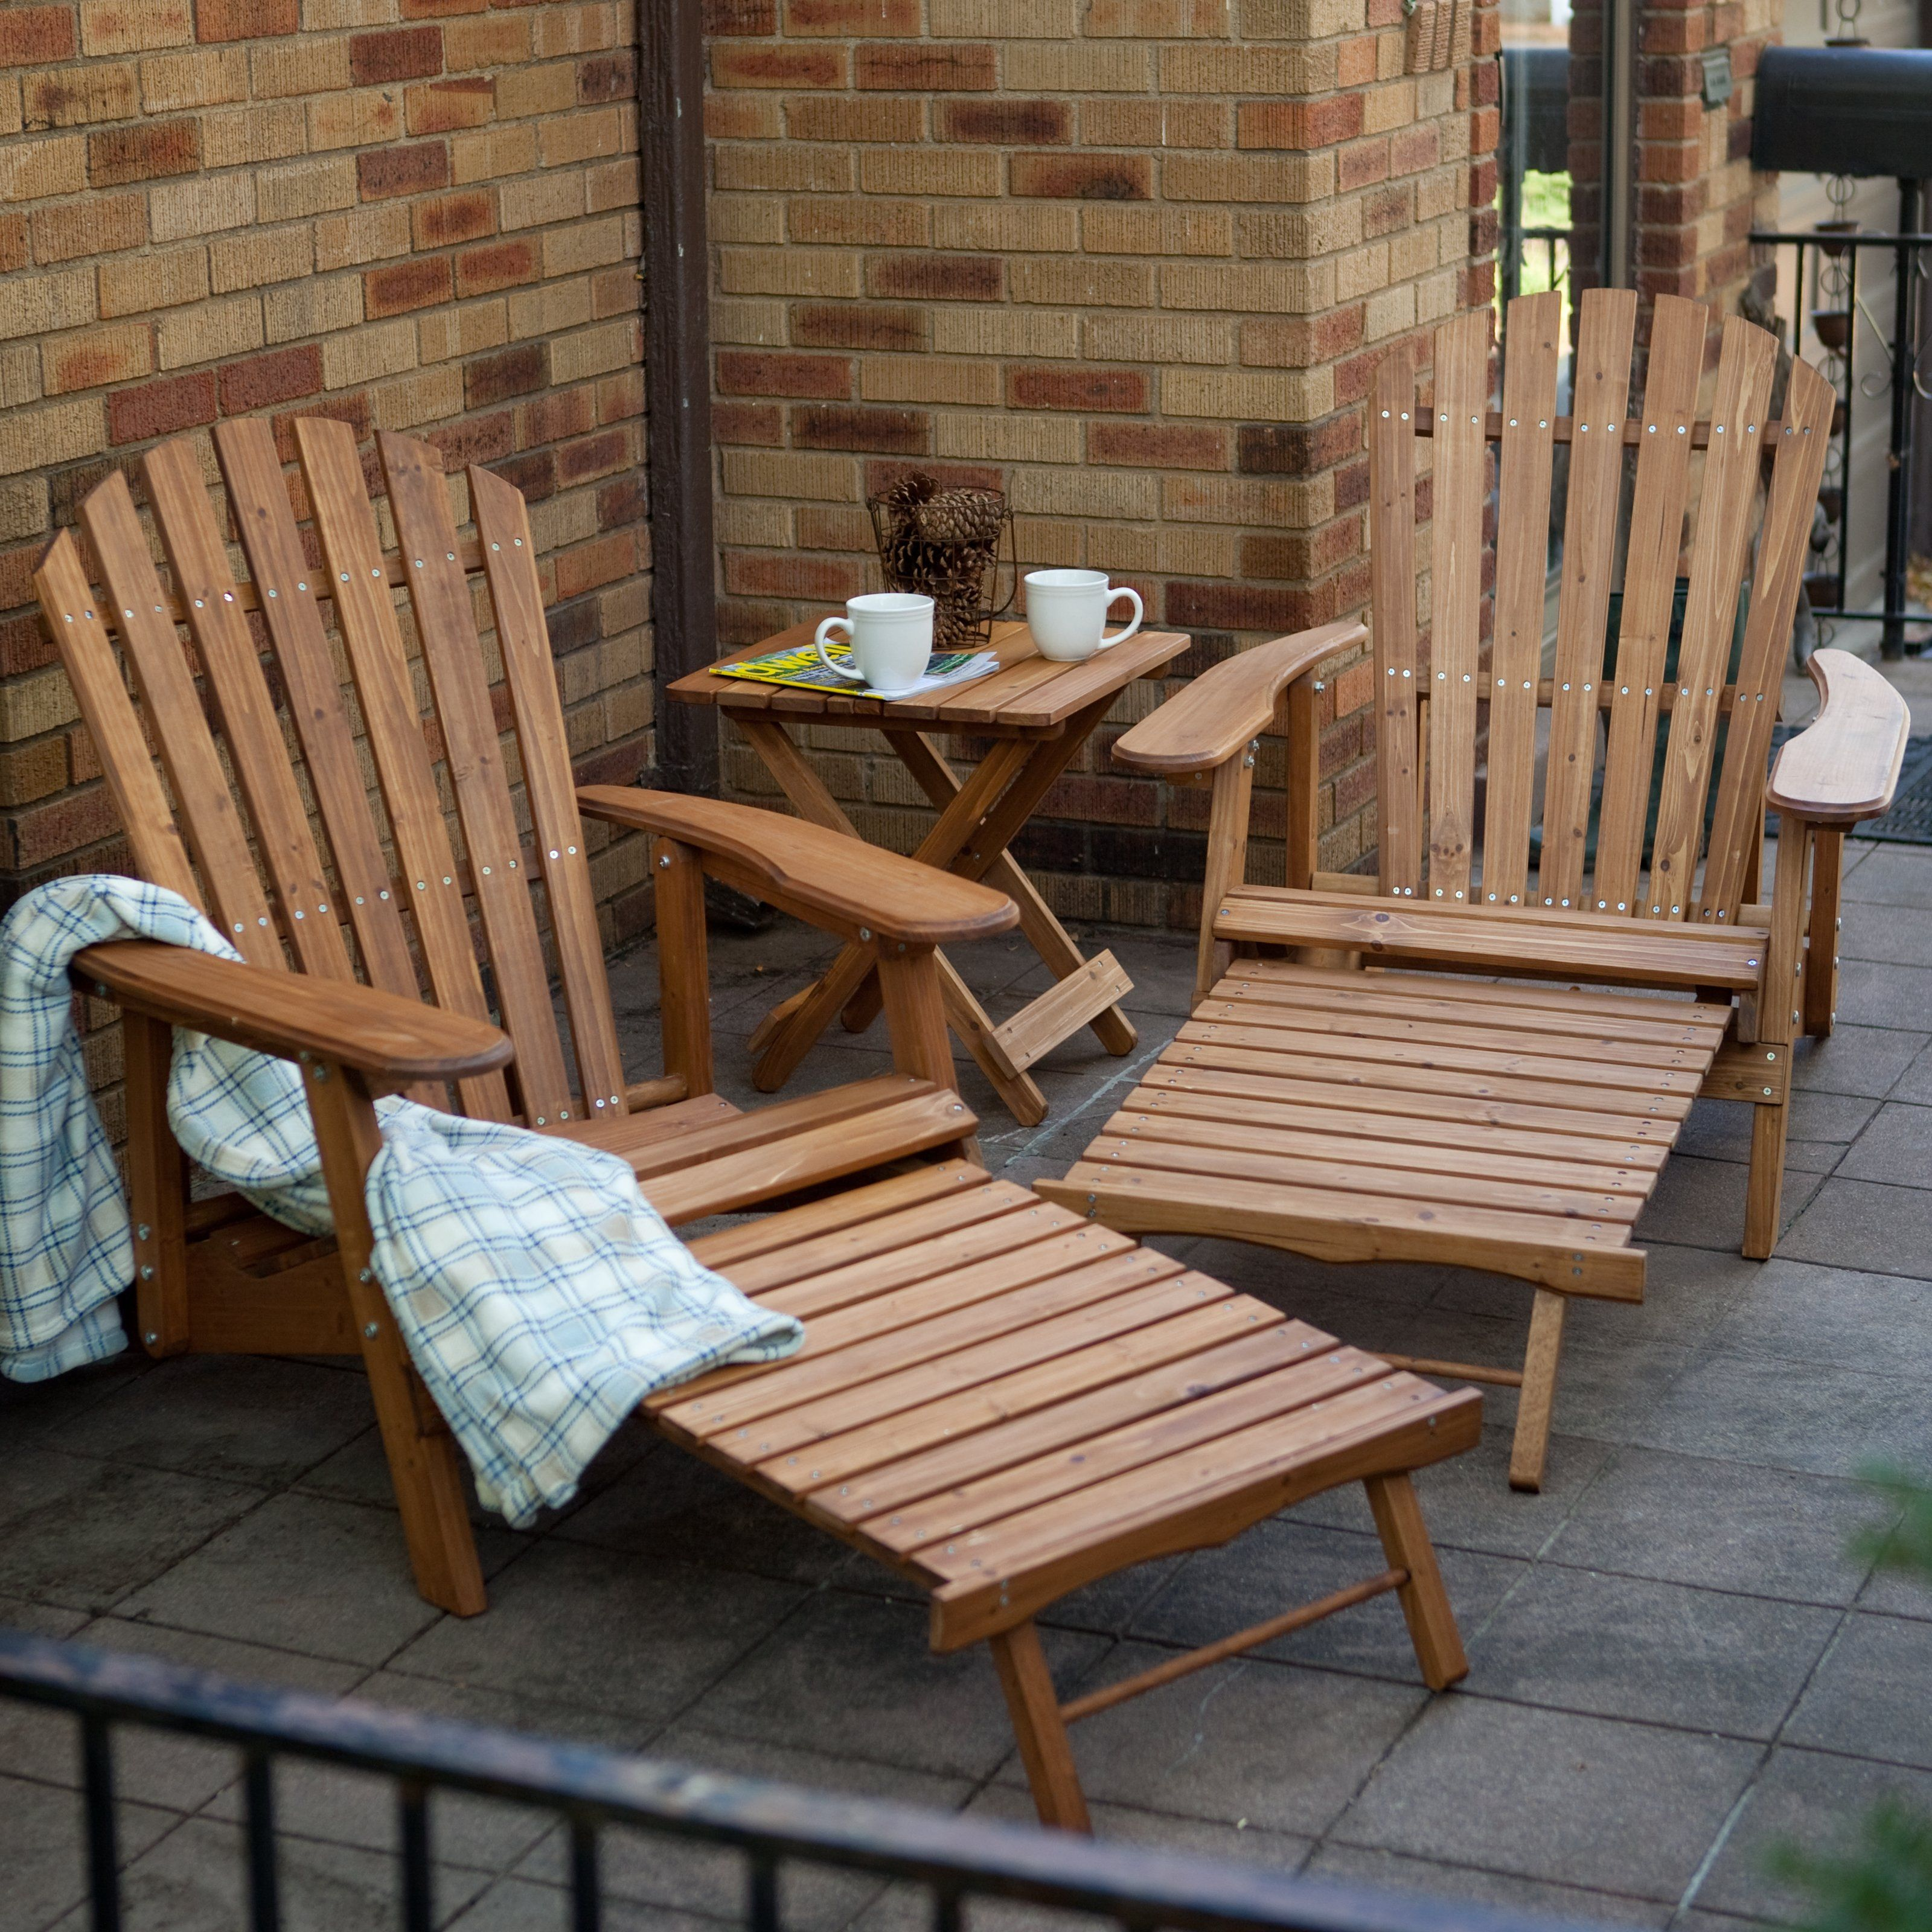 Grand Daddy Oversized Adirondack Chair Set With FREE Side Table